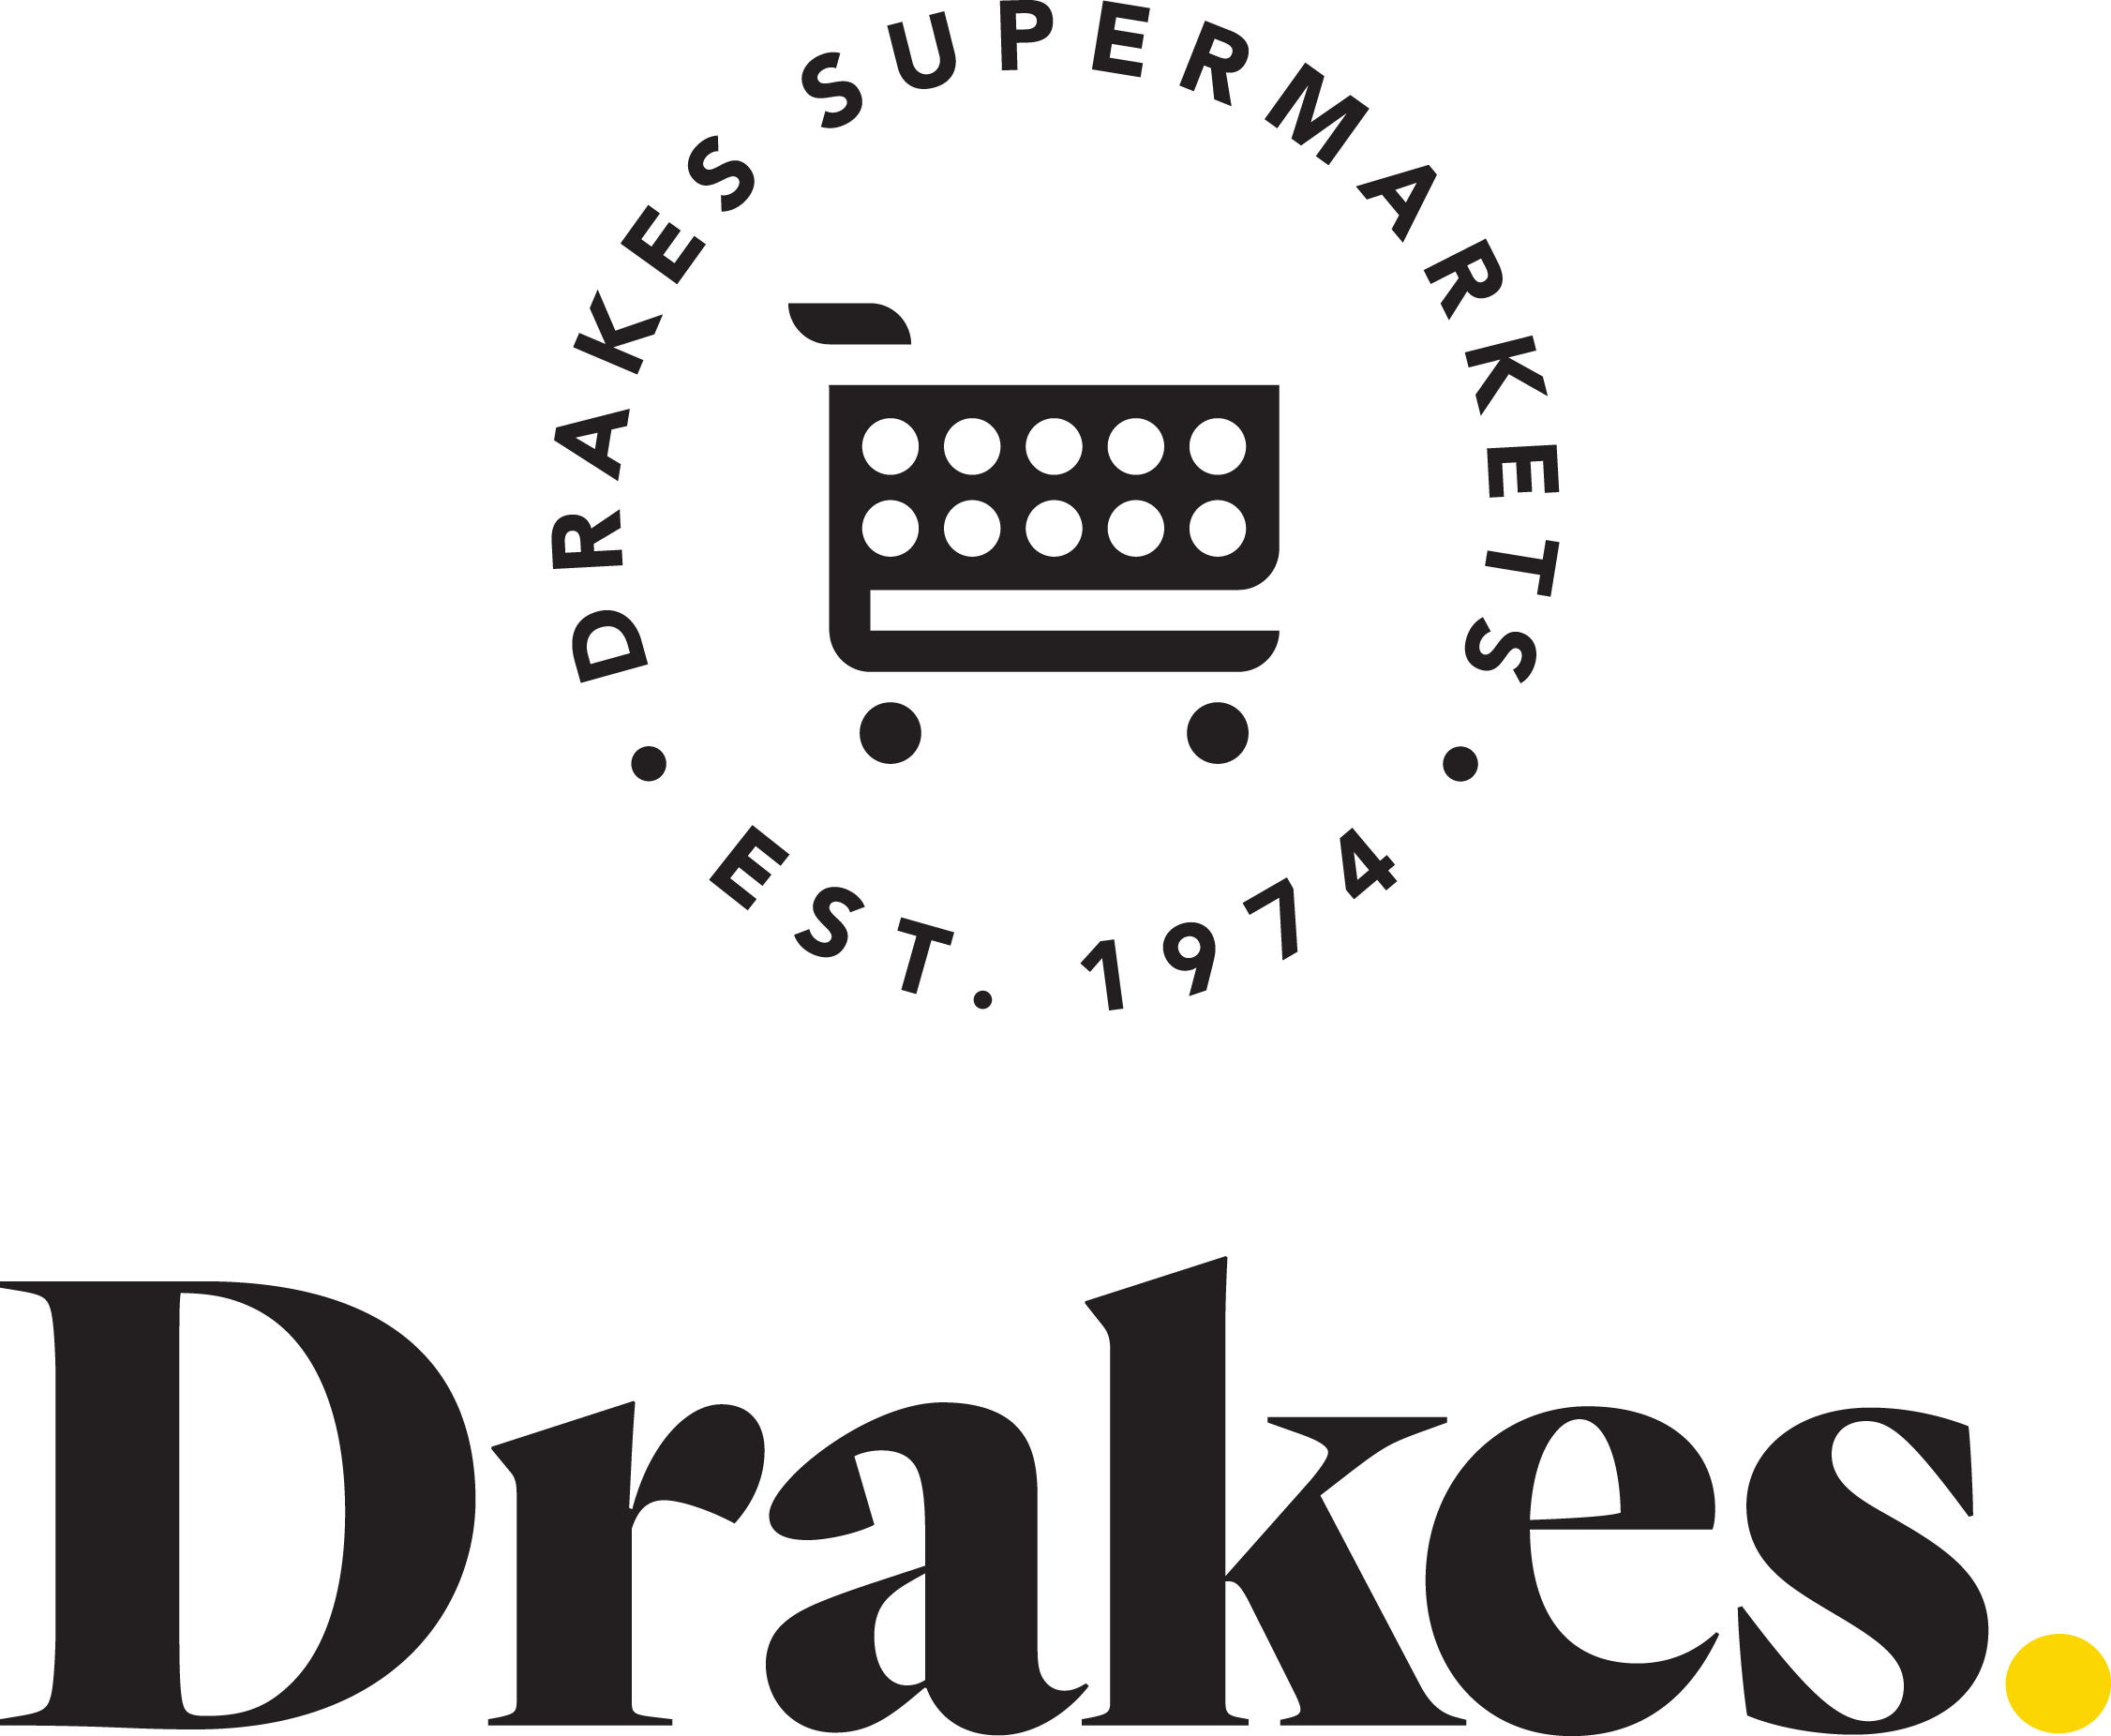 Drakes_Alternative_Colour_Stacked_Logo_Spot_Colour.